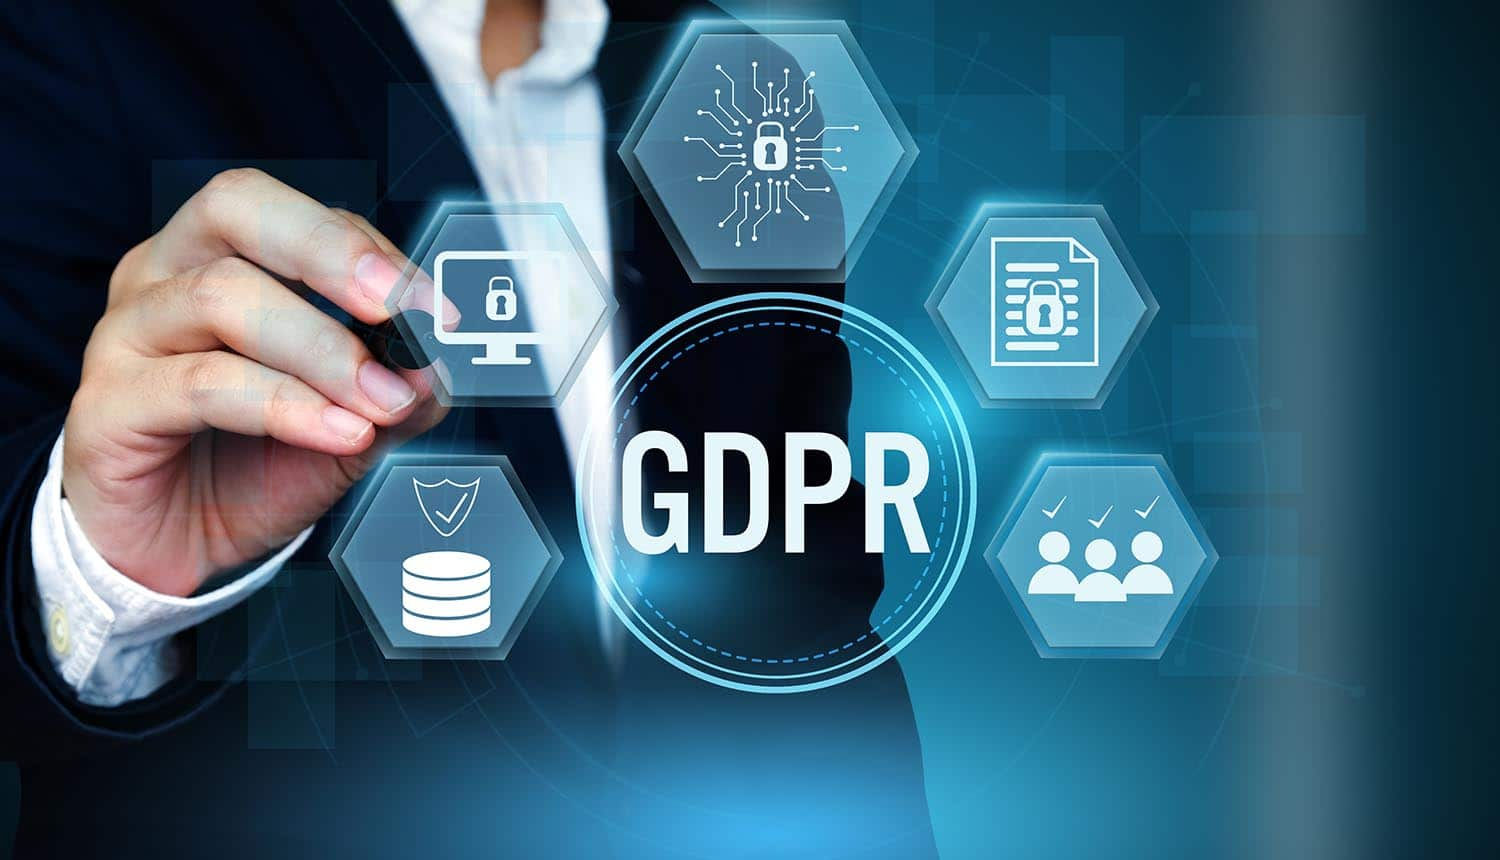 Man touching a virtual screen with GDPR icon showing the basics of GDPR simplified for SMBs